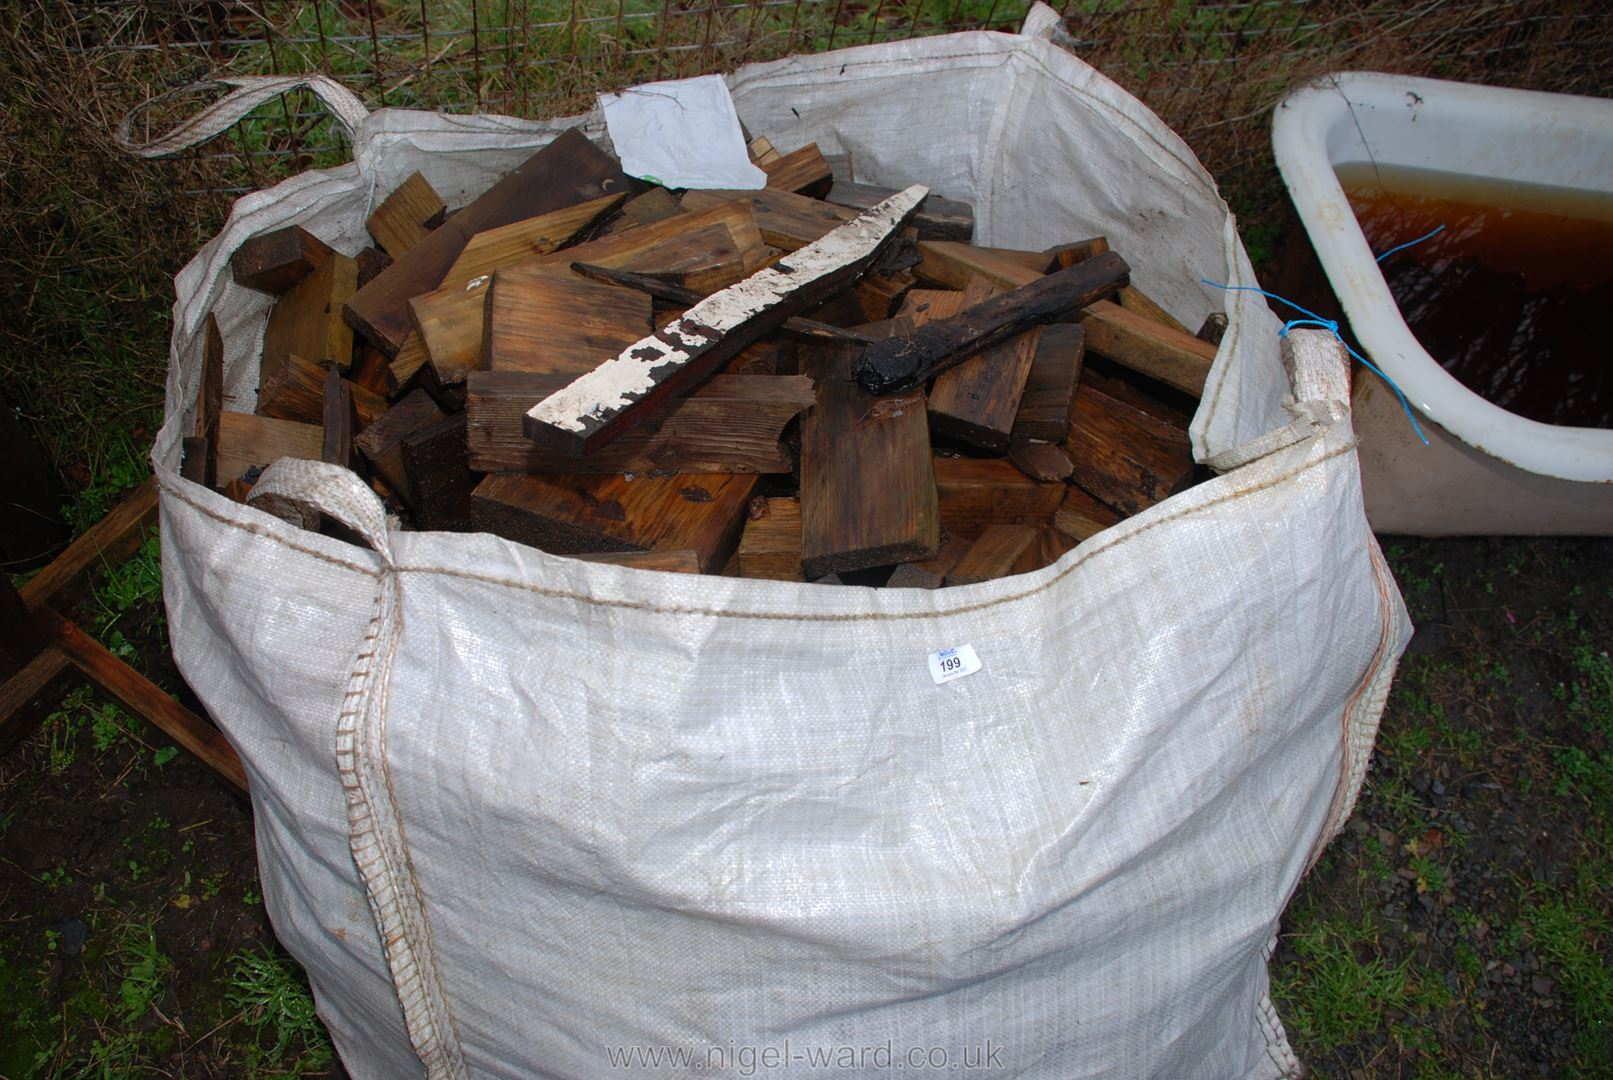 A builders' bag of various timber off cuts for firewood.